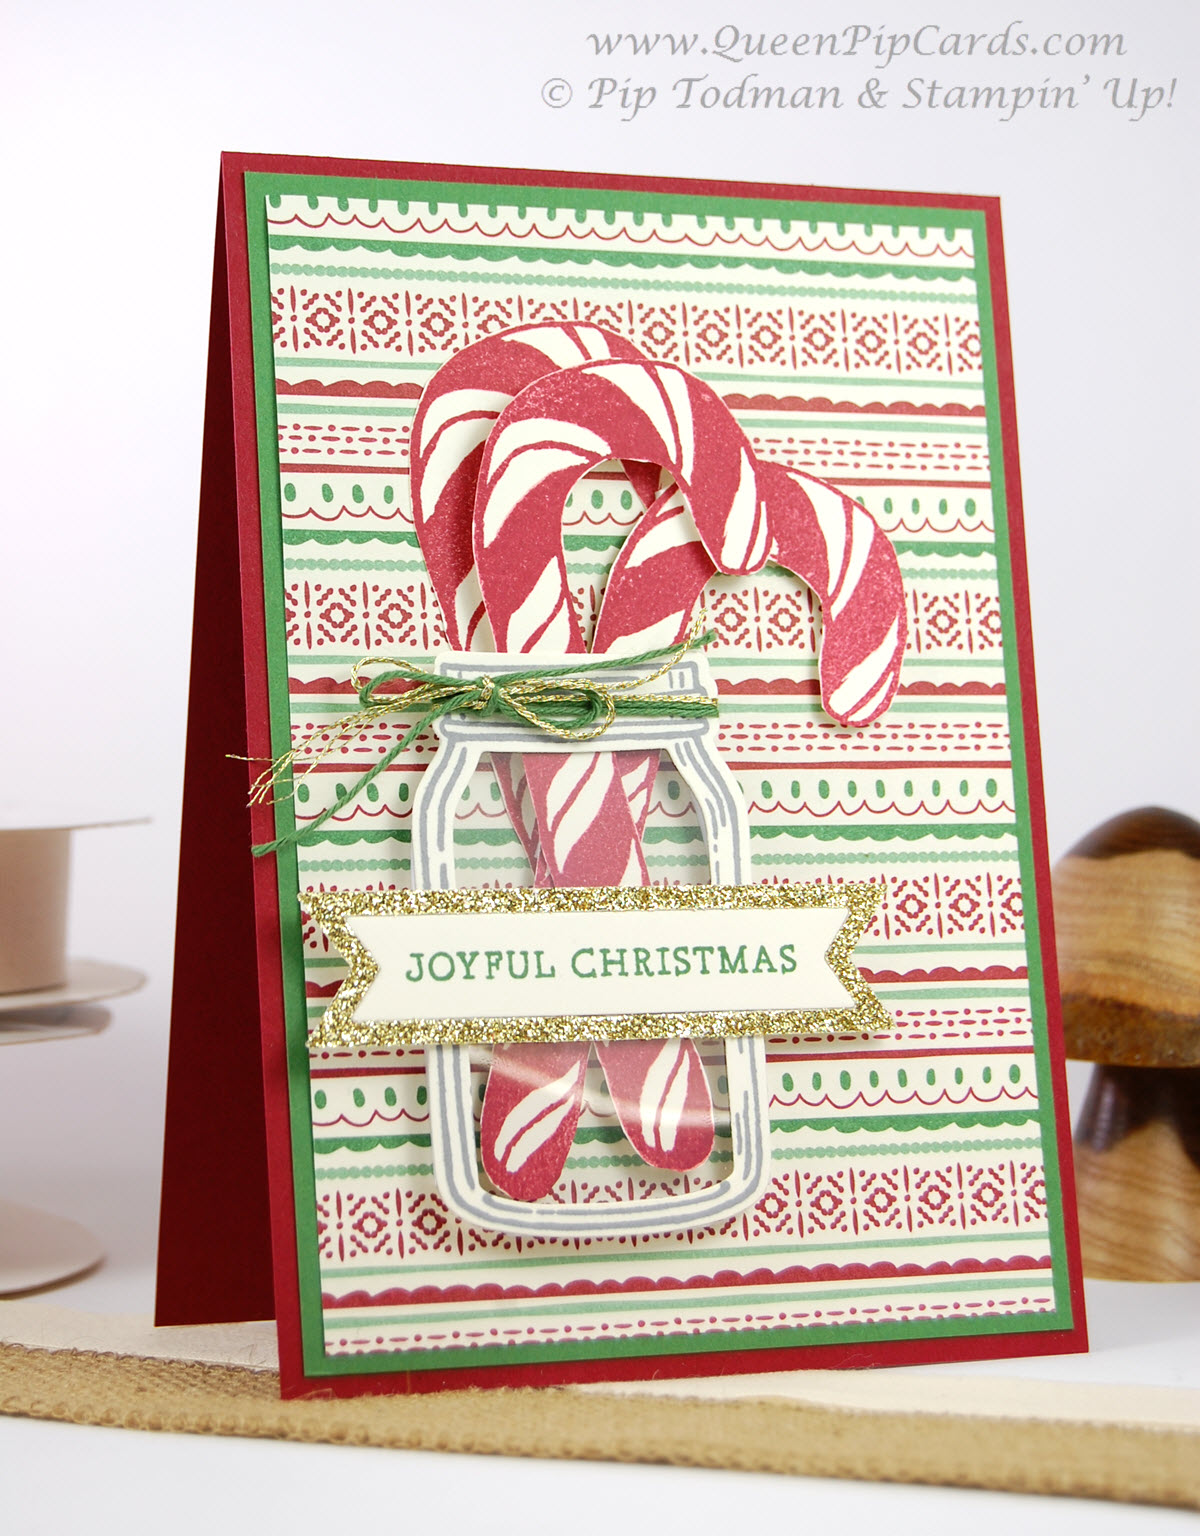 Stampin creative christmas card ideas blog hop queen pip cards christmas card ideas banners for christmas 4 p m4hsunfo Gallery